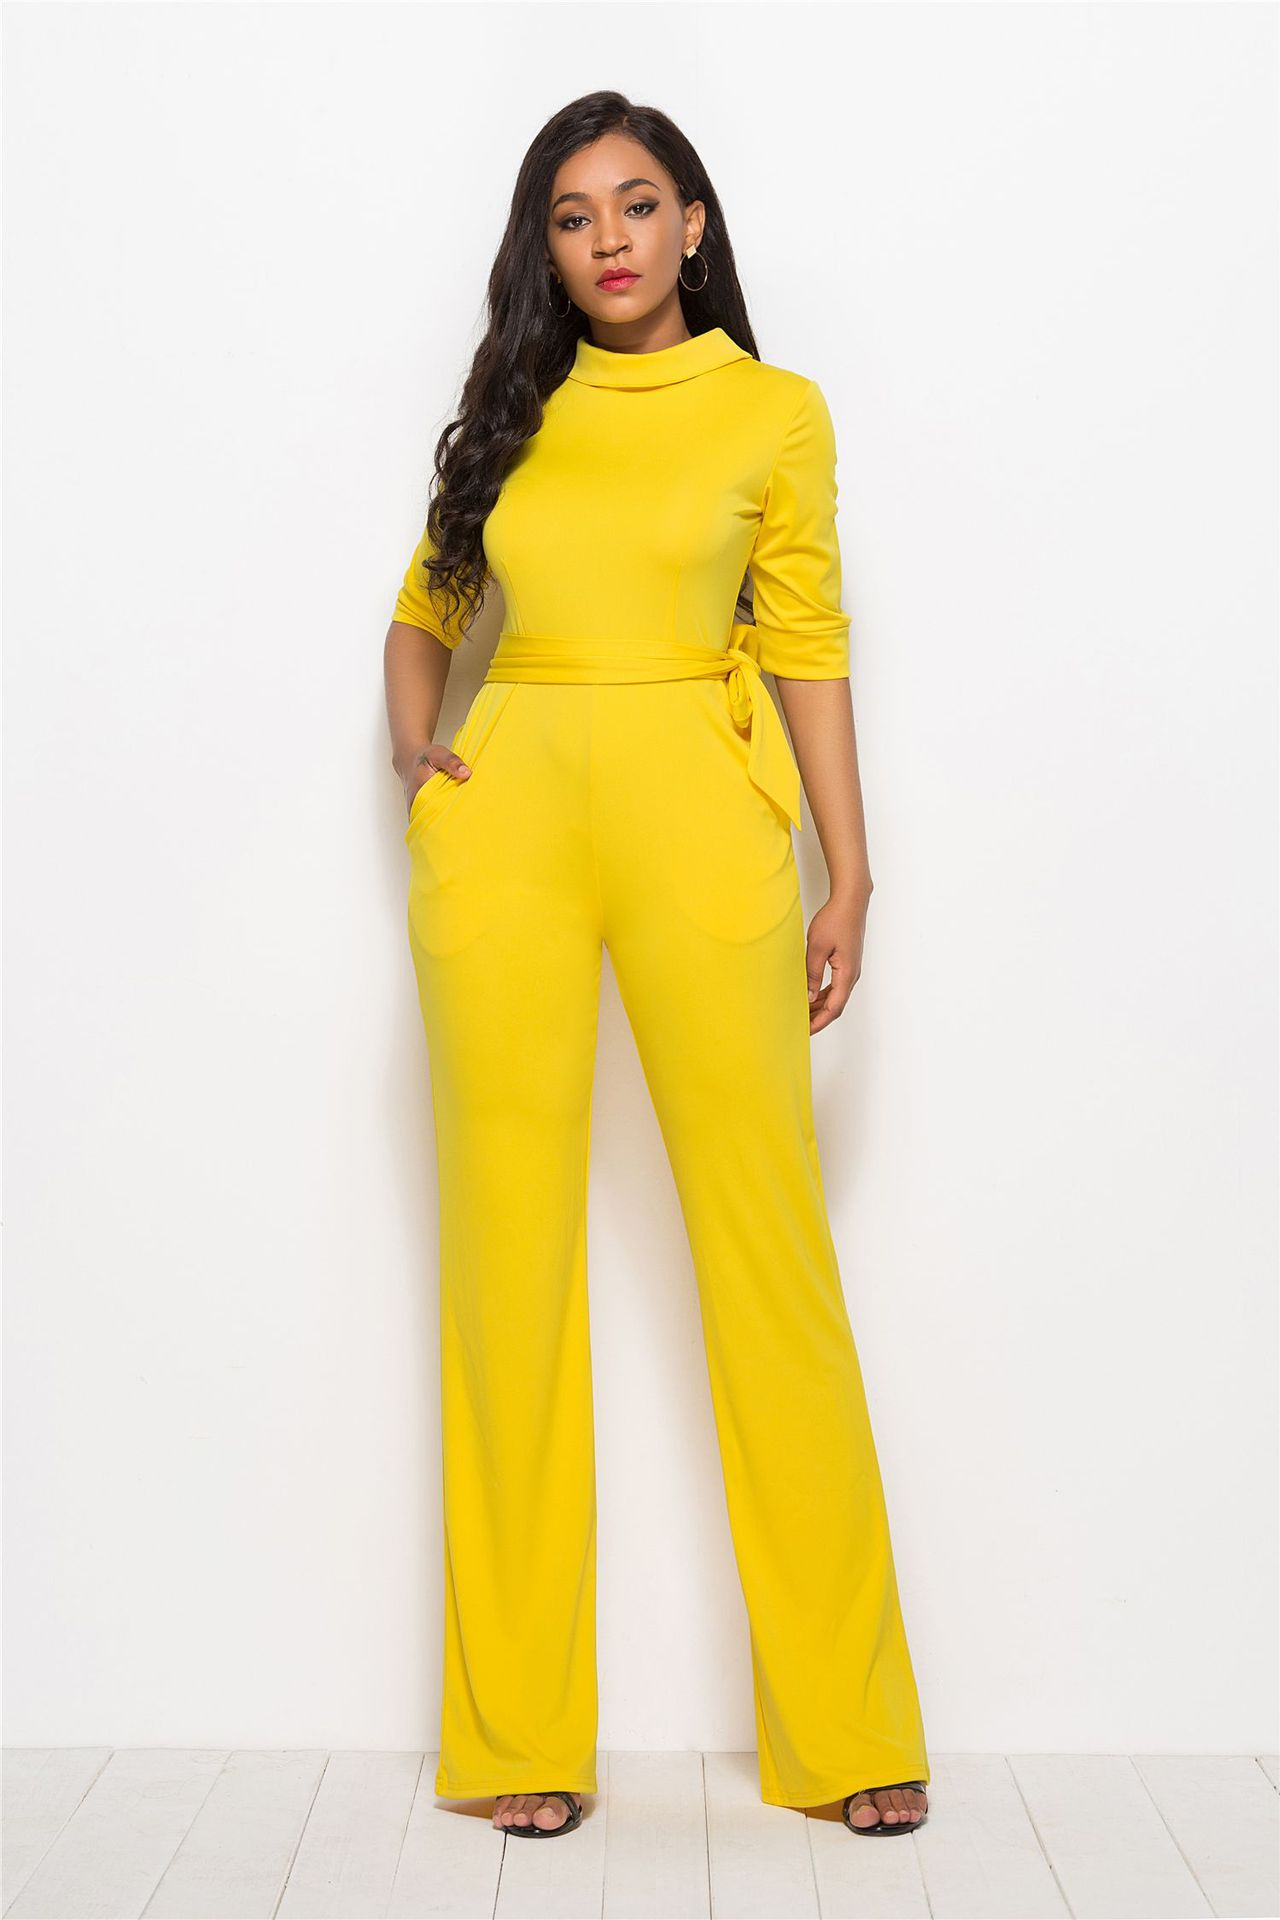 Sexy Bodysuit Real Vadim 2019 Hot Large Size Women 39 s Clothing Solid Color Half sleeve Jumpsuit Tie Waist Slim Trousers Women in Jumpsuits from Women 39 s Clothing